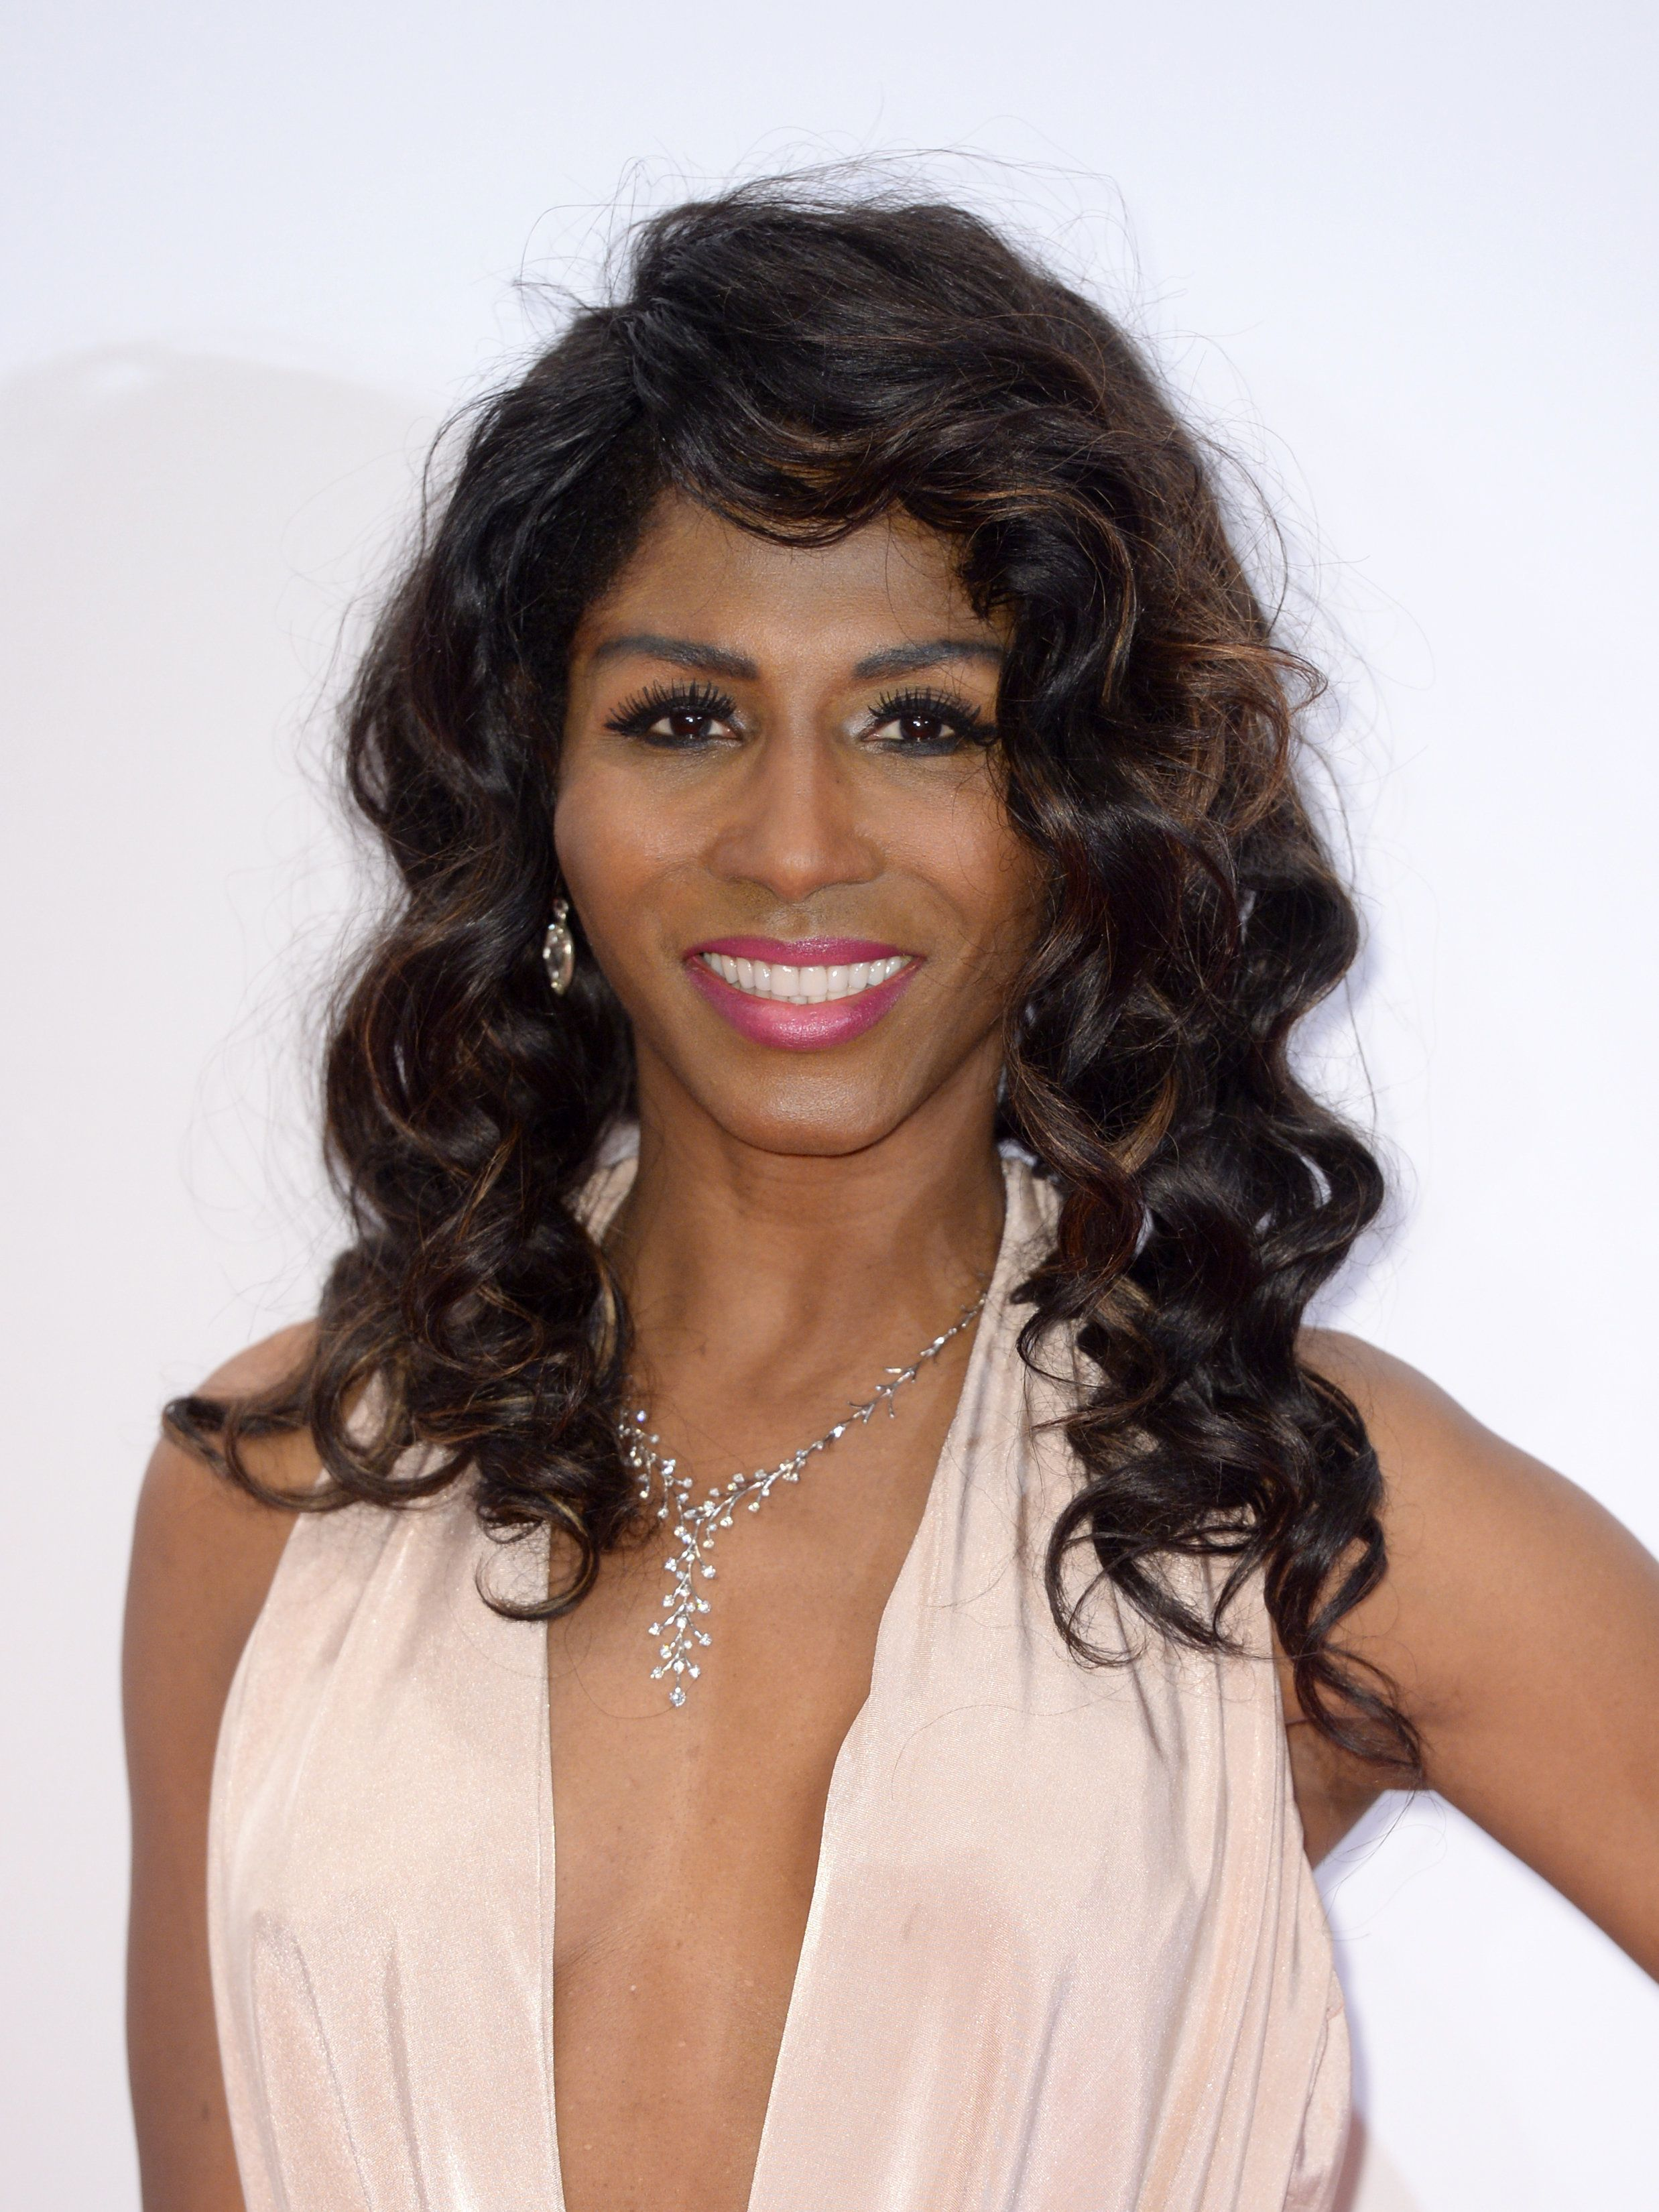 Sinitta Reveals 'Celebrity Big Brother' Demands, And They're Suitably